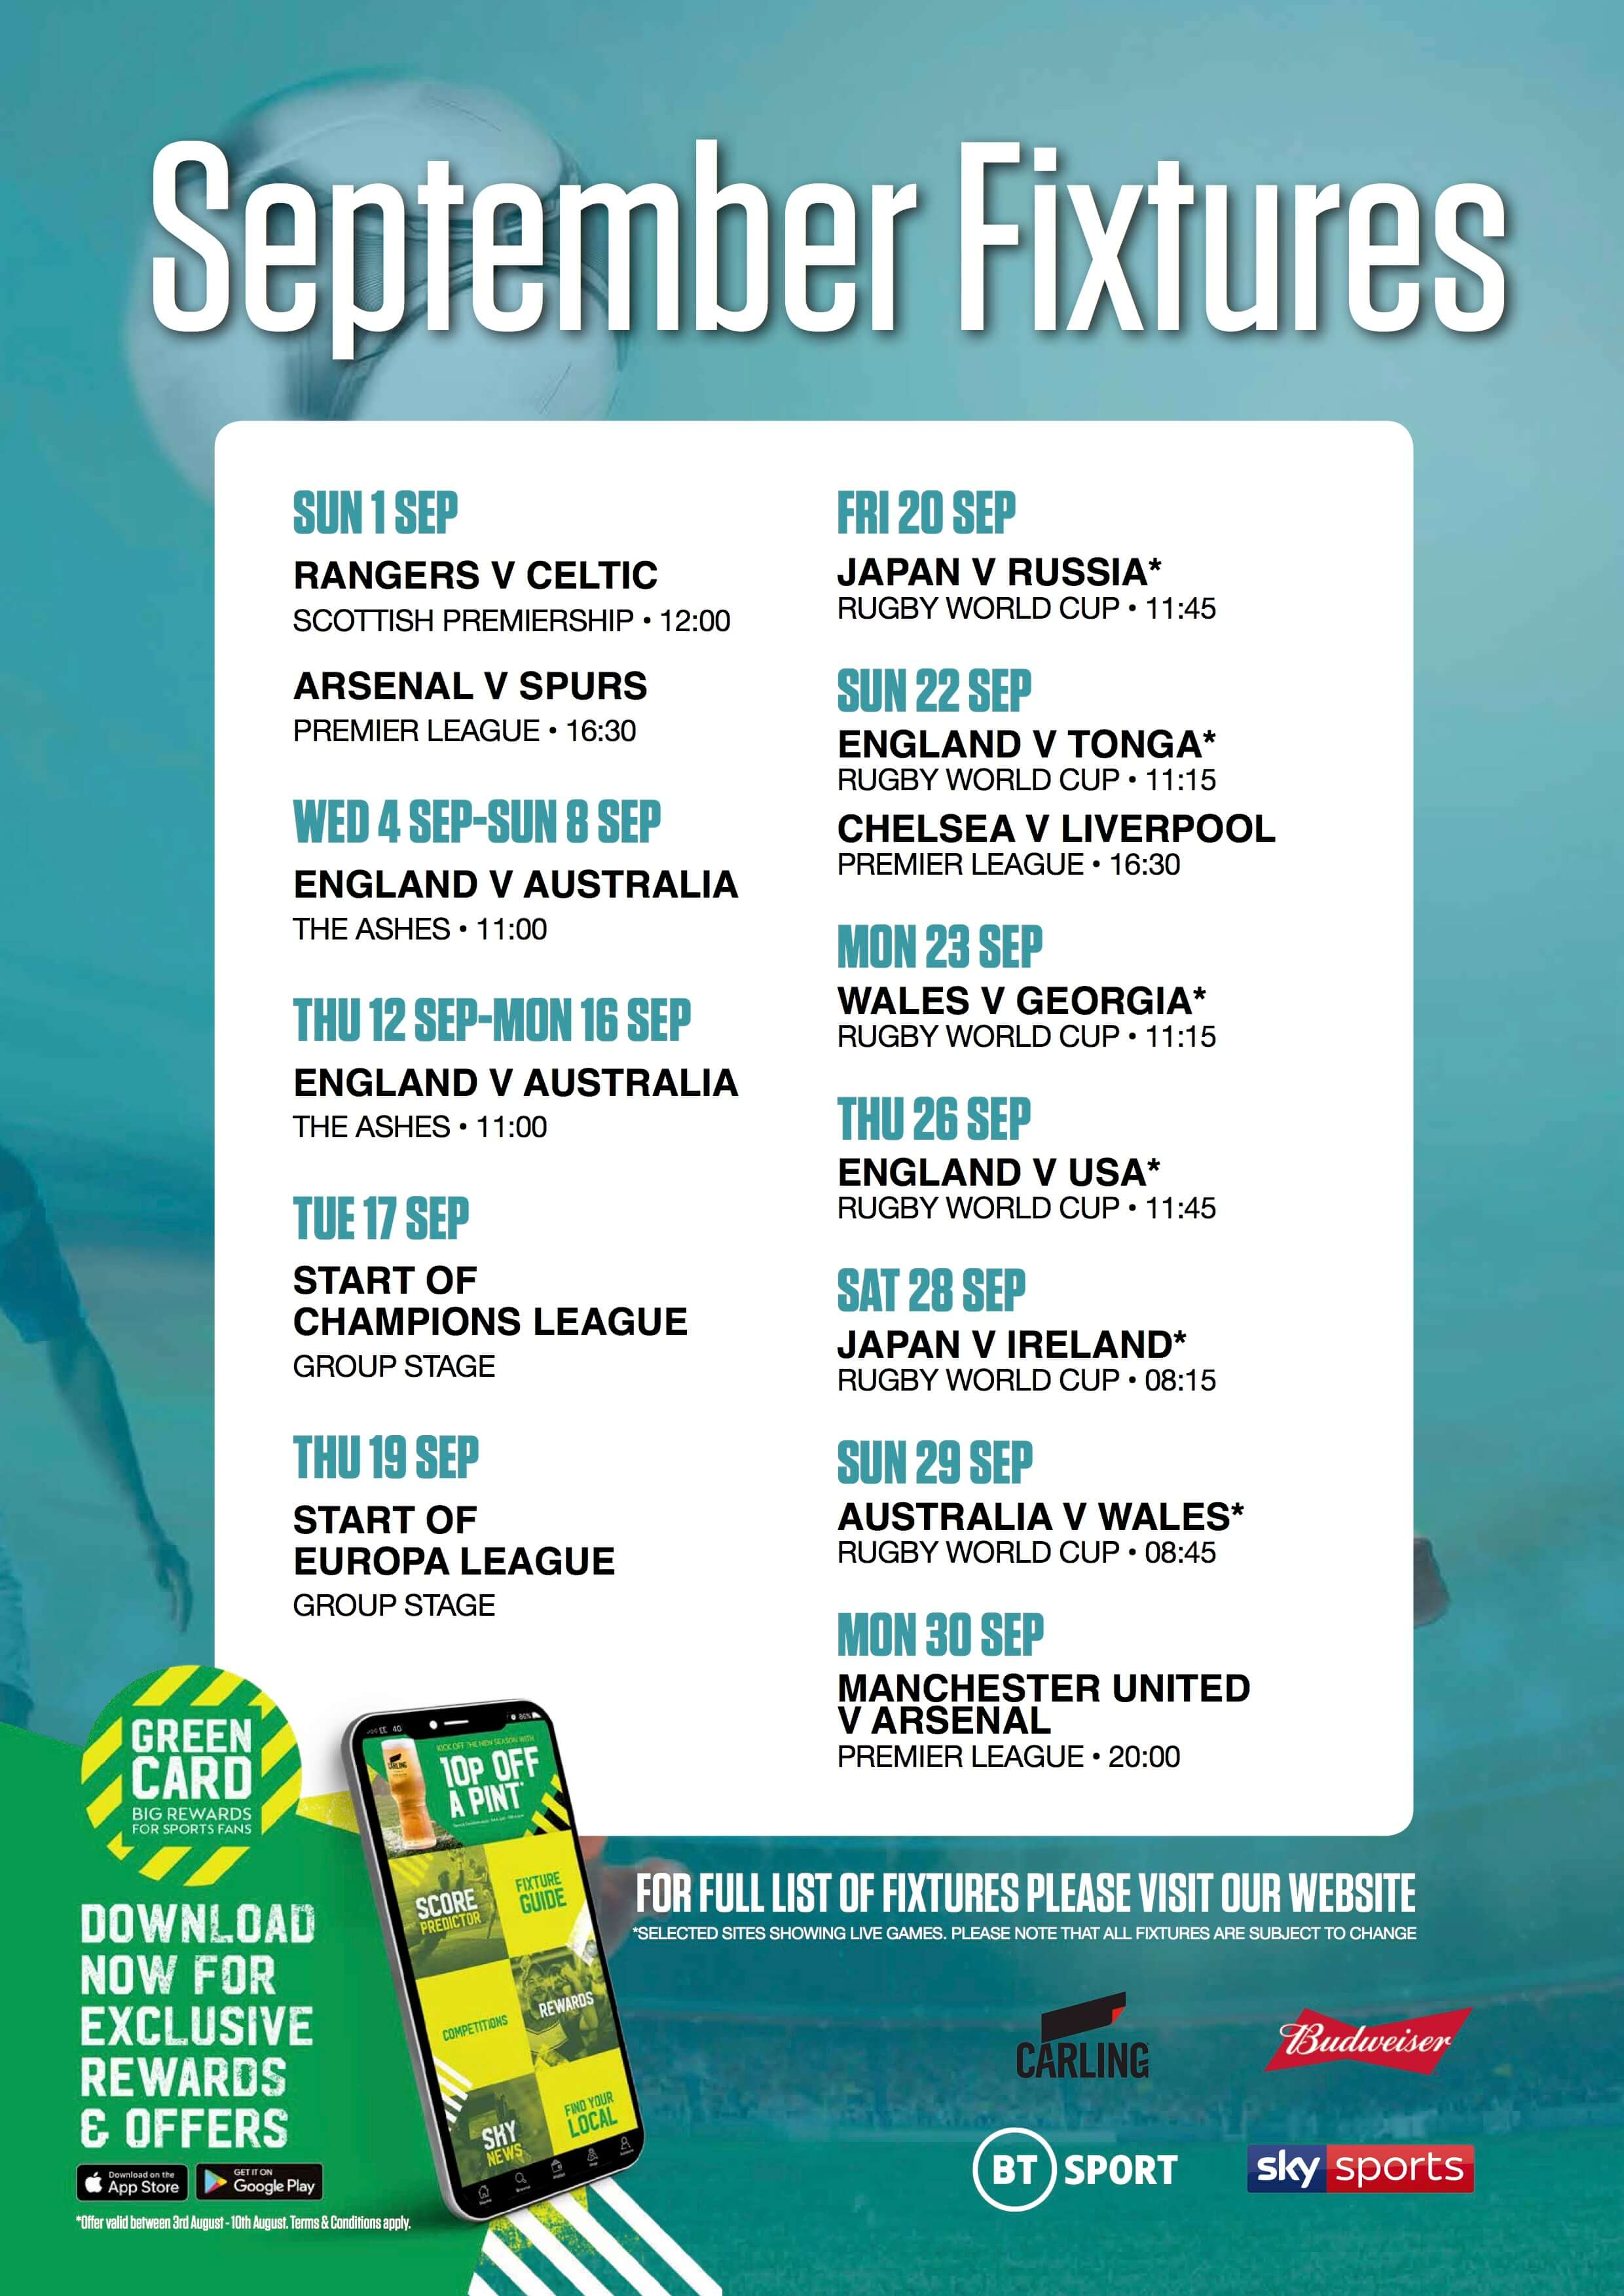 Live sports fixtures in January at The Grove Inn